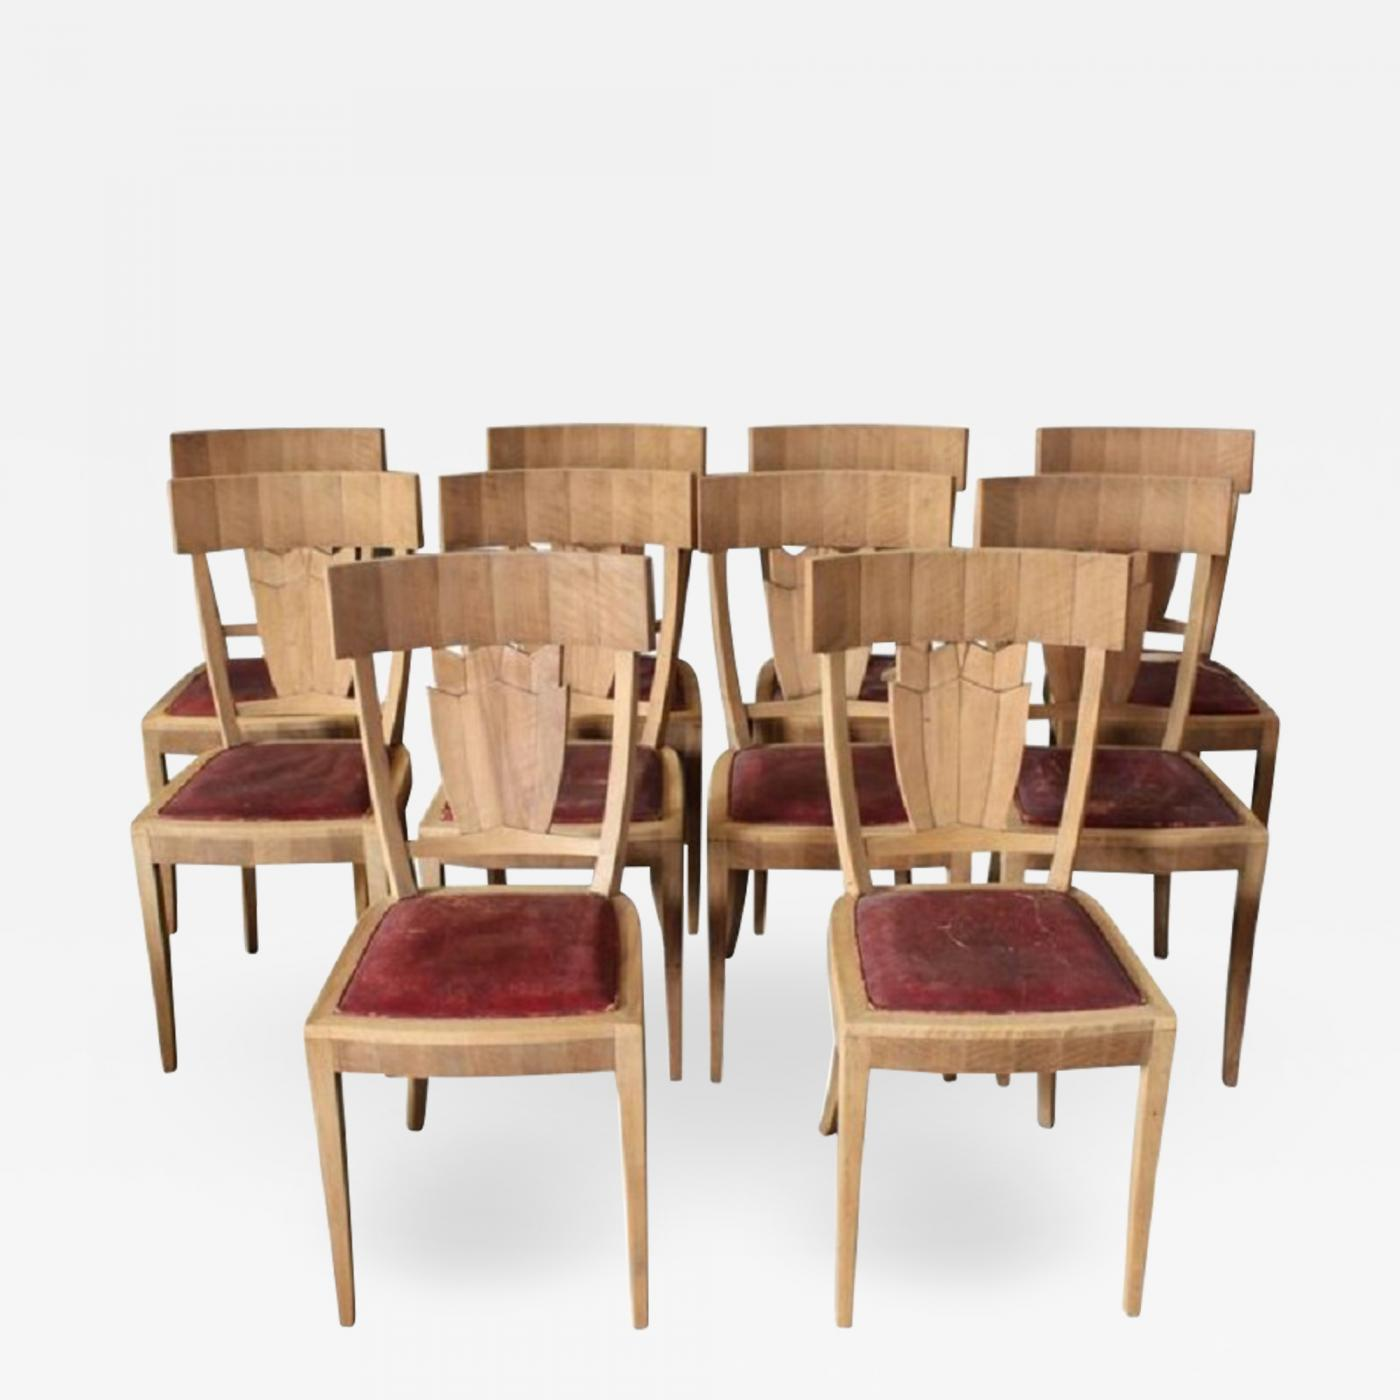 Art Deco Dining Chairs Jean Charles Moreux Rare Set Of Ten French Art Deco Walnut Dining Chairs By Jean Charles Moreux